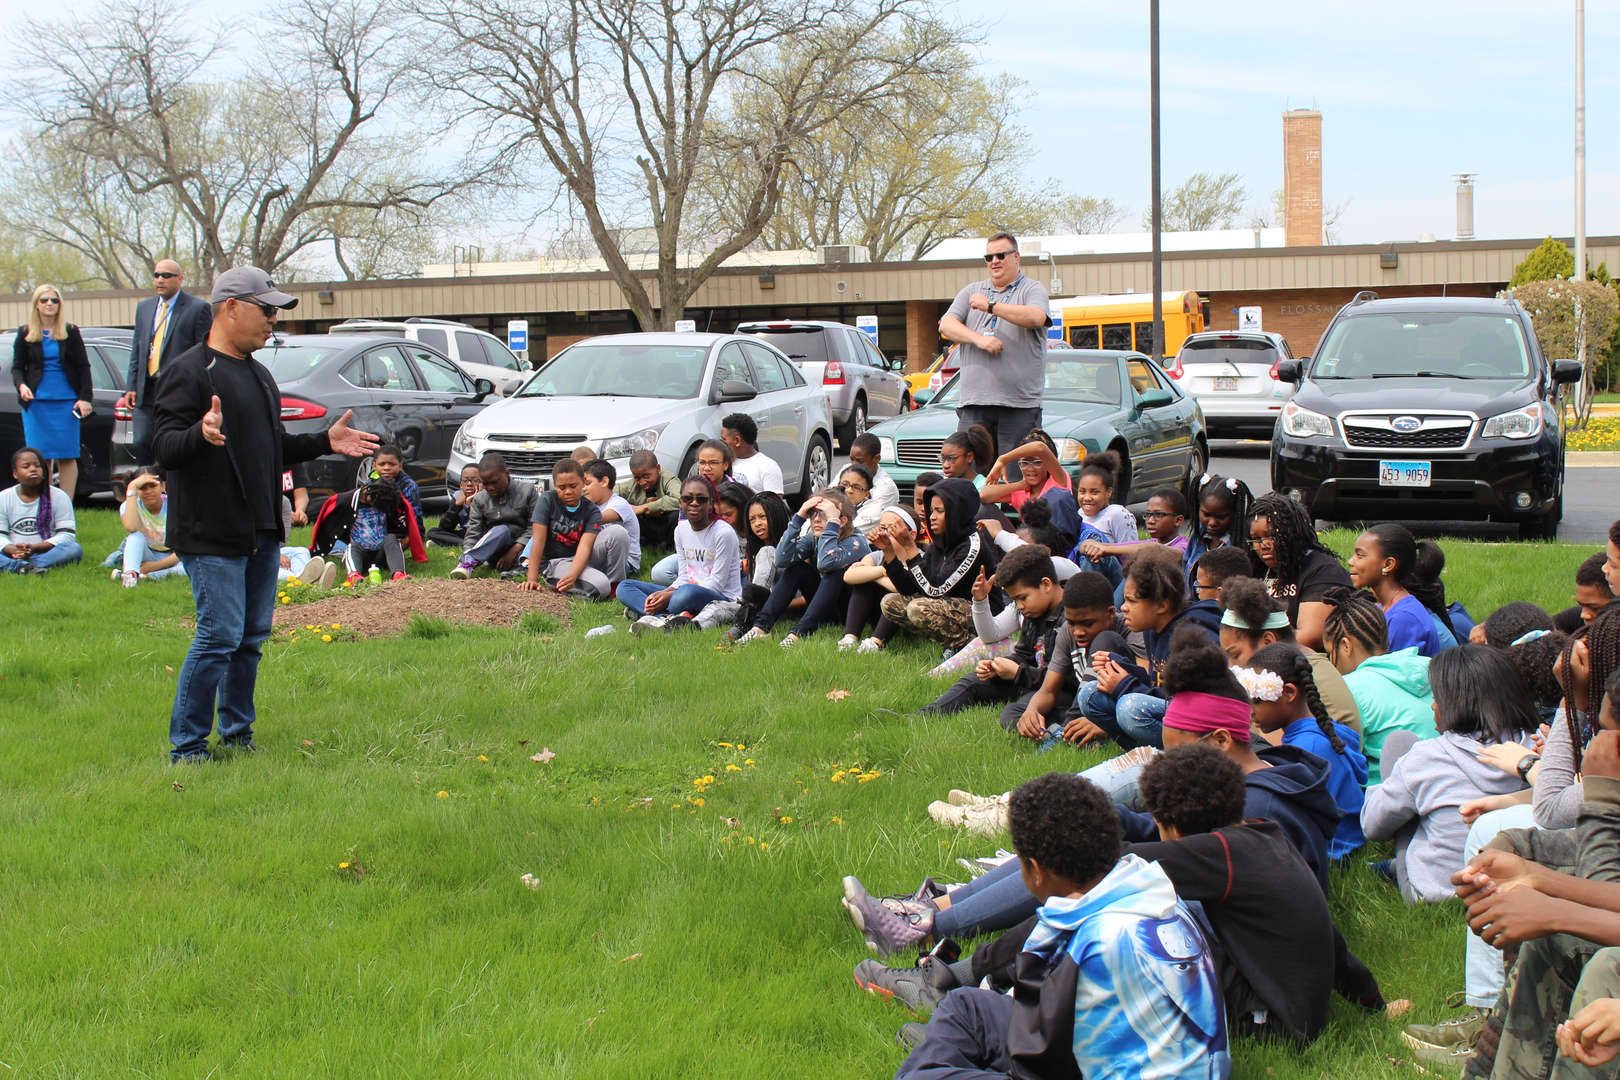 Artist Luis Kaiulani speaks to students at Flossmoor Hills after installing his sculpture, Yellow Flat-Line